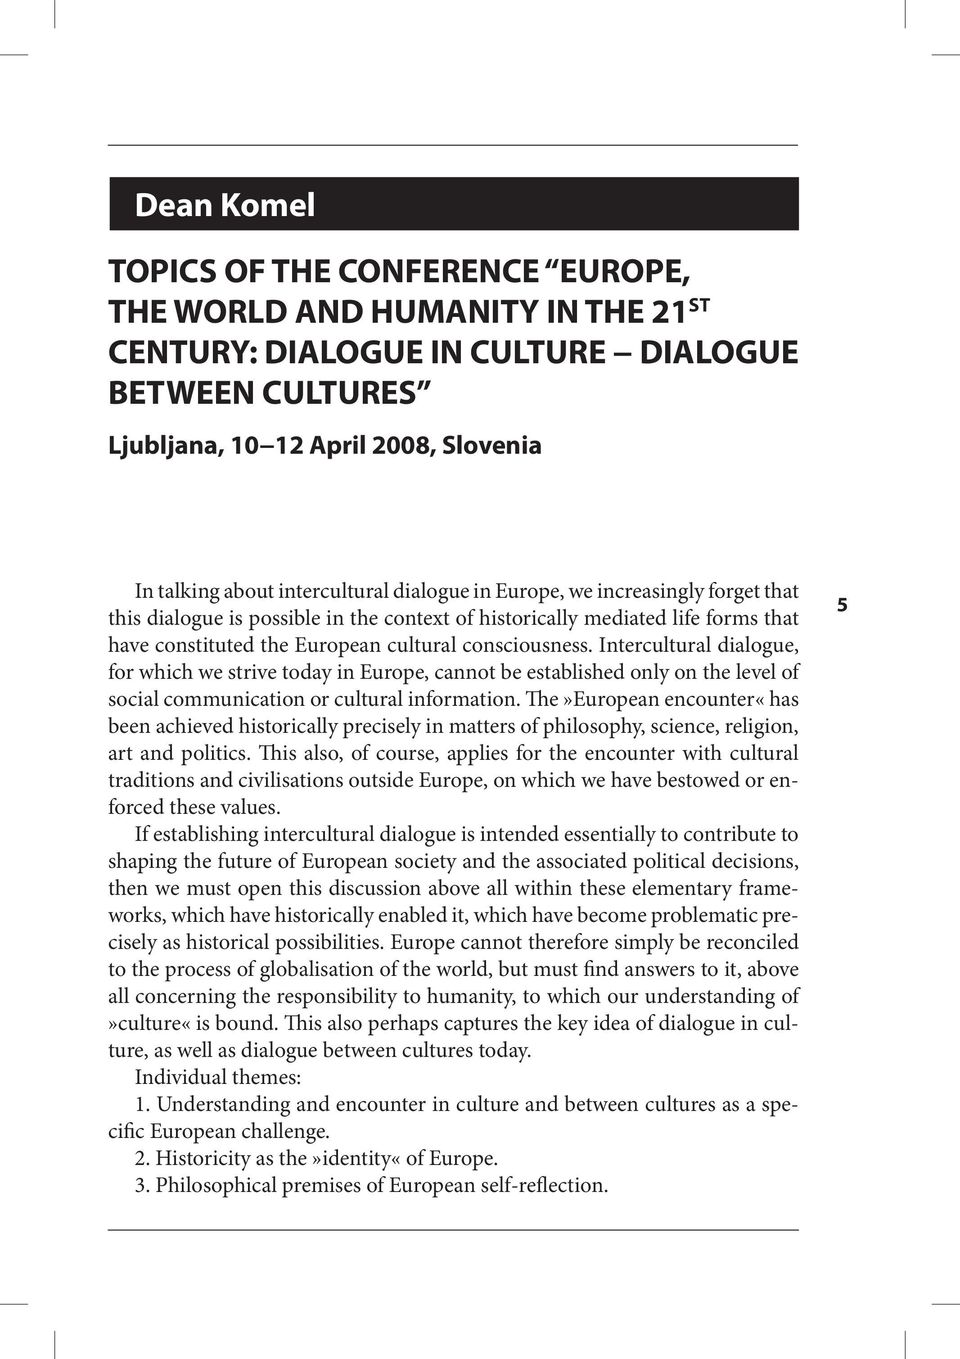 consciousness. Intercultural dialogue, for which we strive today in Europe, cannot be established only on the level of social communication or cultural information.